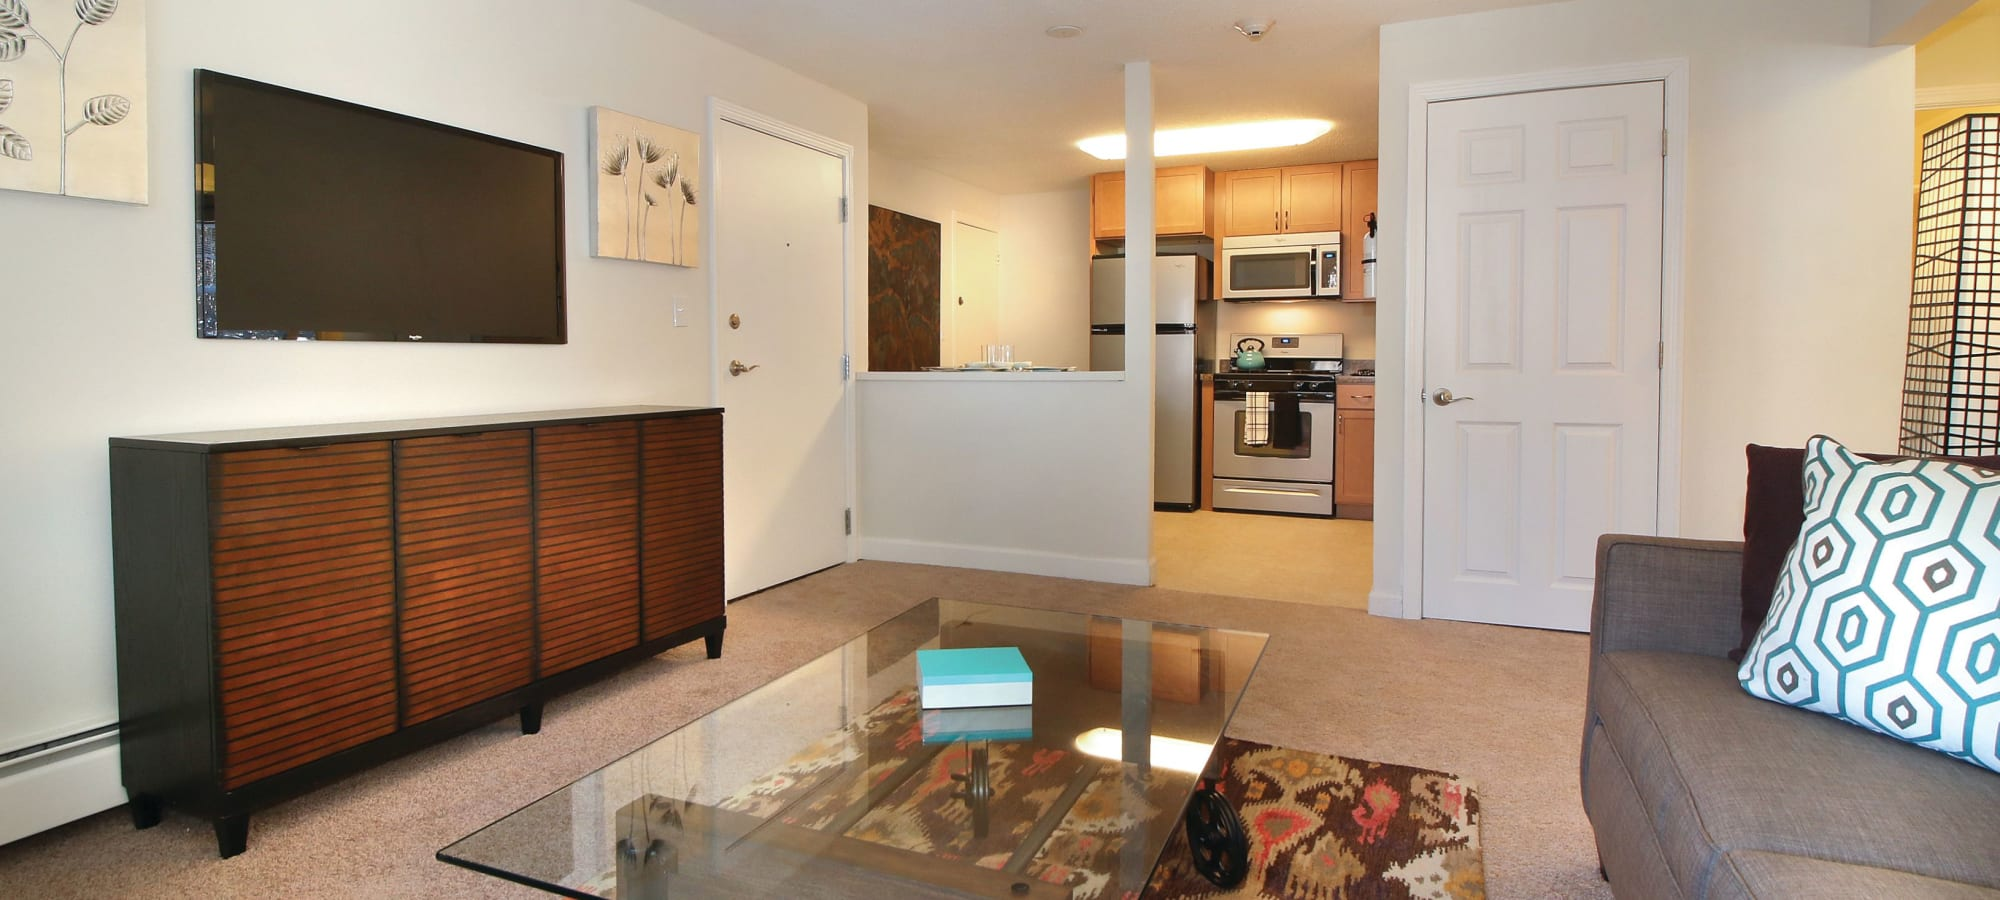 Photo gallery at Middlesex Crossing in Billerica, Massachusetts